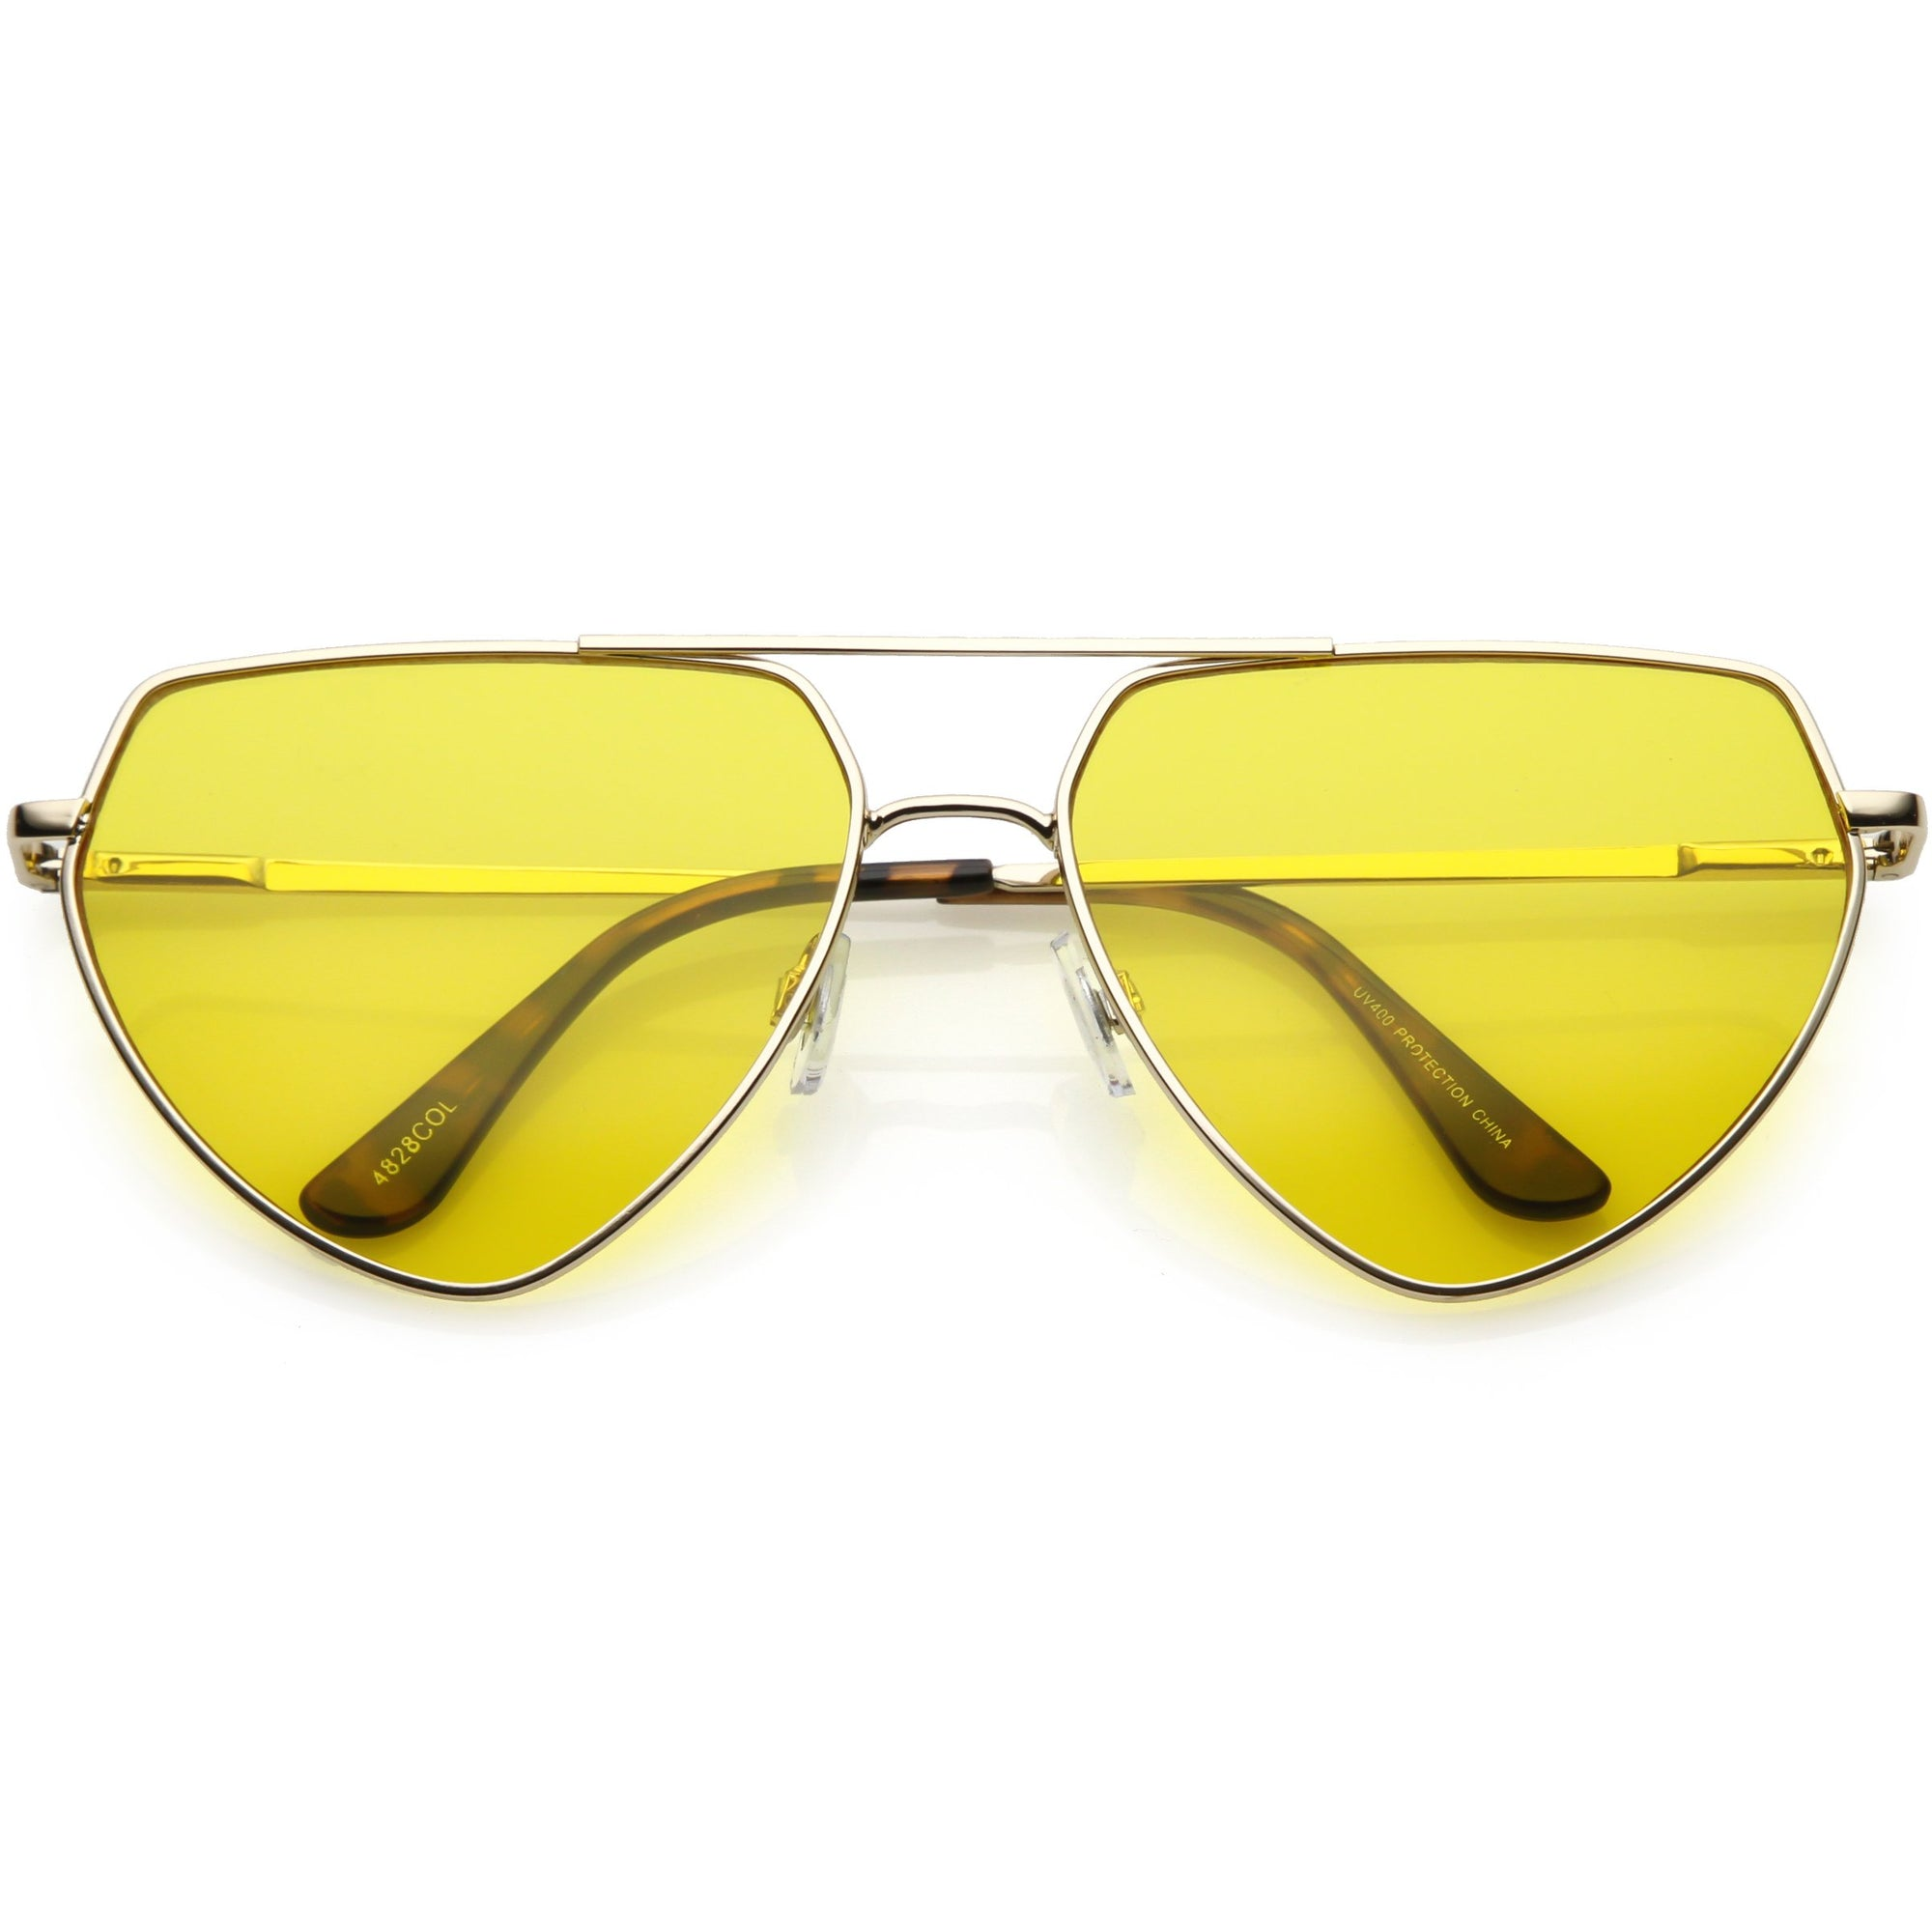 571dd023f36 Retro Oversize Color Tone Flat Top Aviator Sunglasses - zeroUV